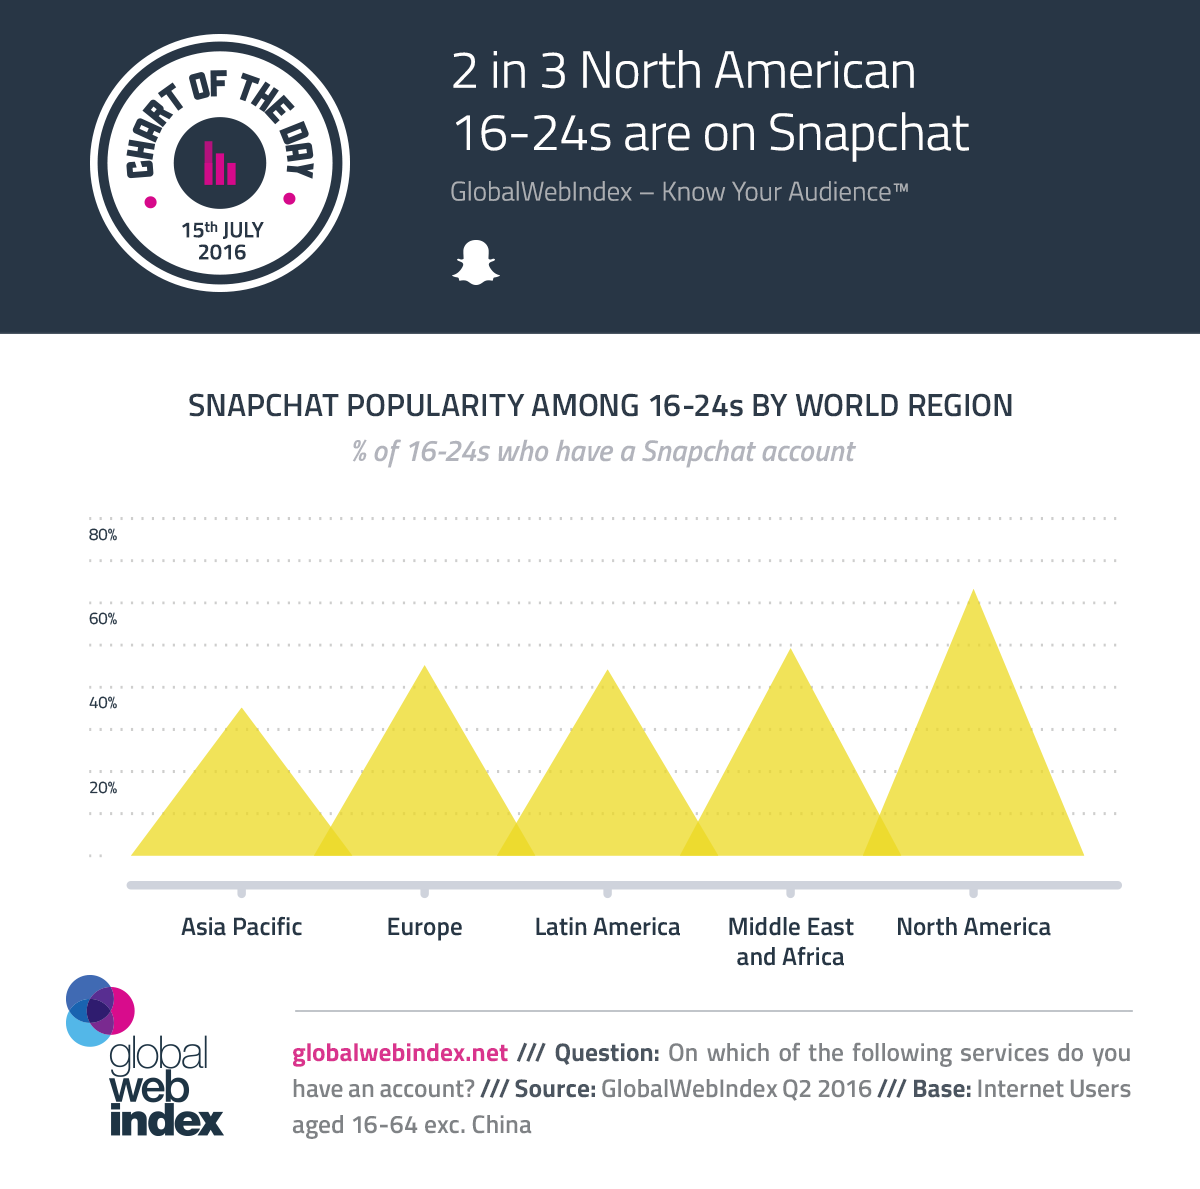 2 in 3 North American 16-24s are on Snapchat